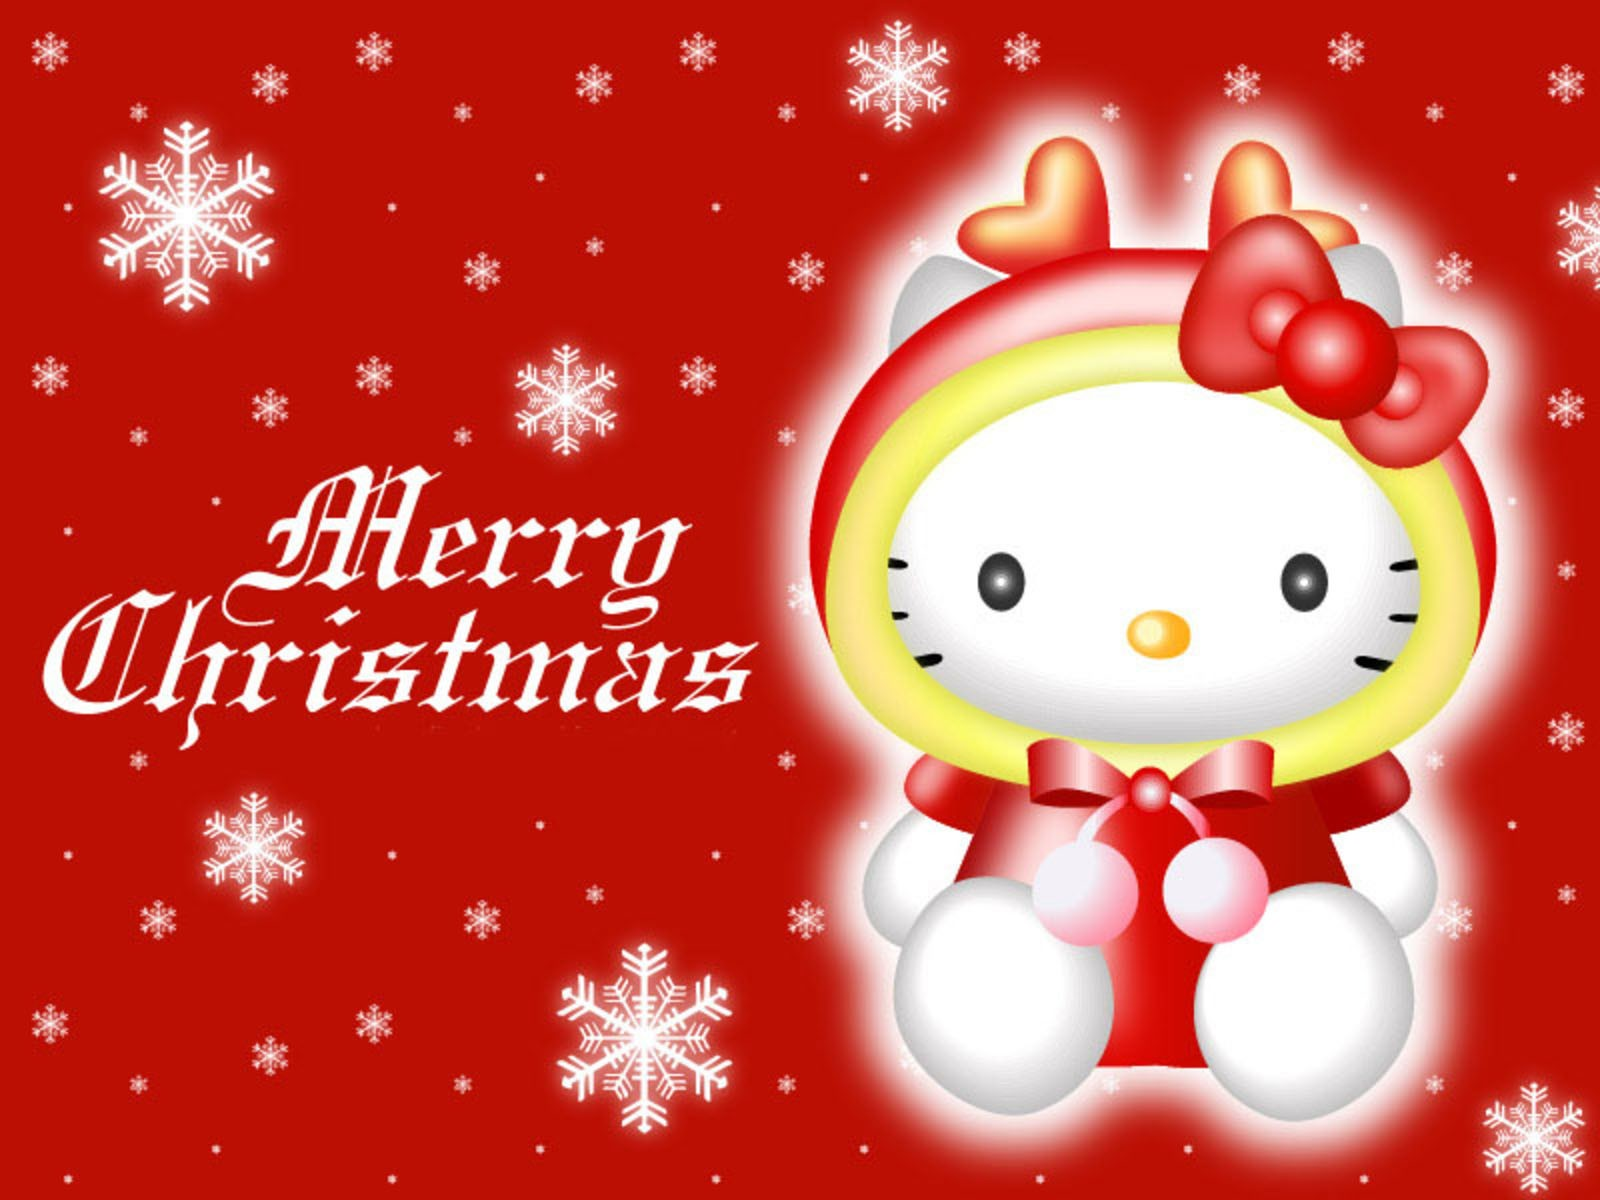 Cool Wallpaper Hello Kitty Animated - christmas-hello-kitty-wallpaper-16  Pictures_89766.jpg